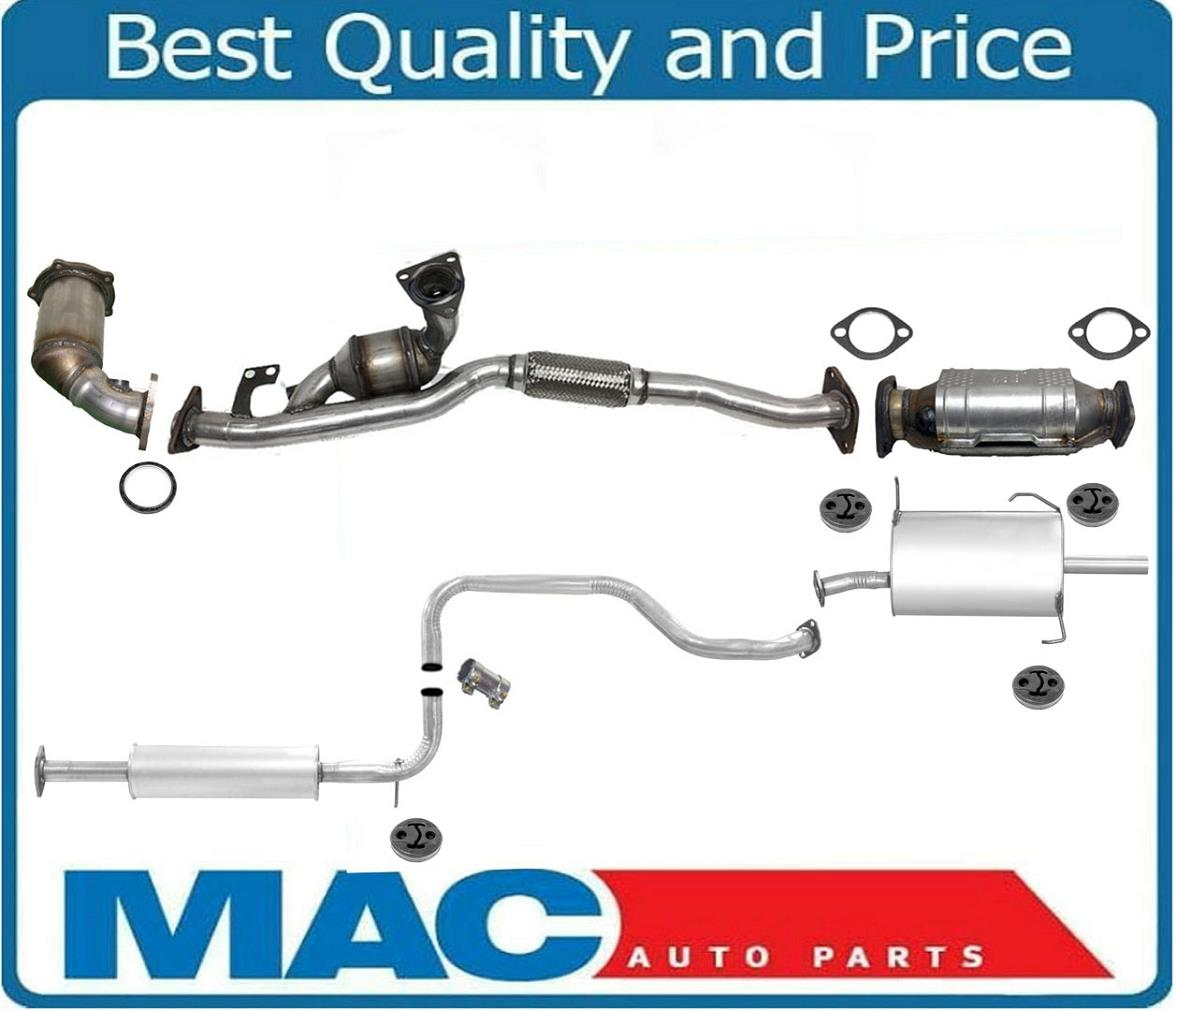 hight resolution of details about full exhaust system catalytic converters gaskets for 6 98 3 99 maxima calif emi